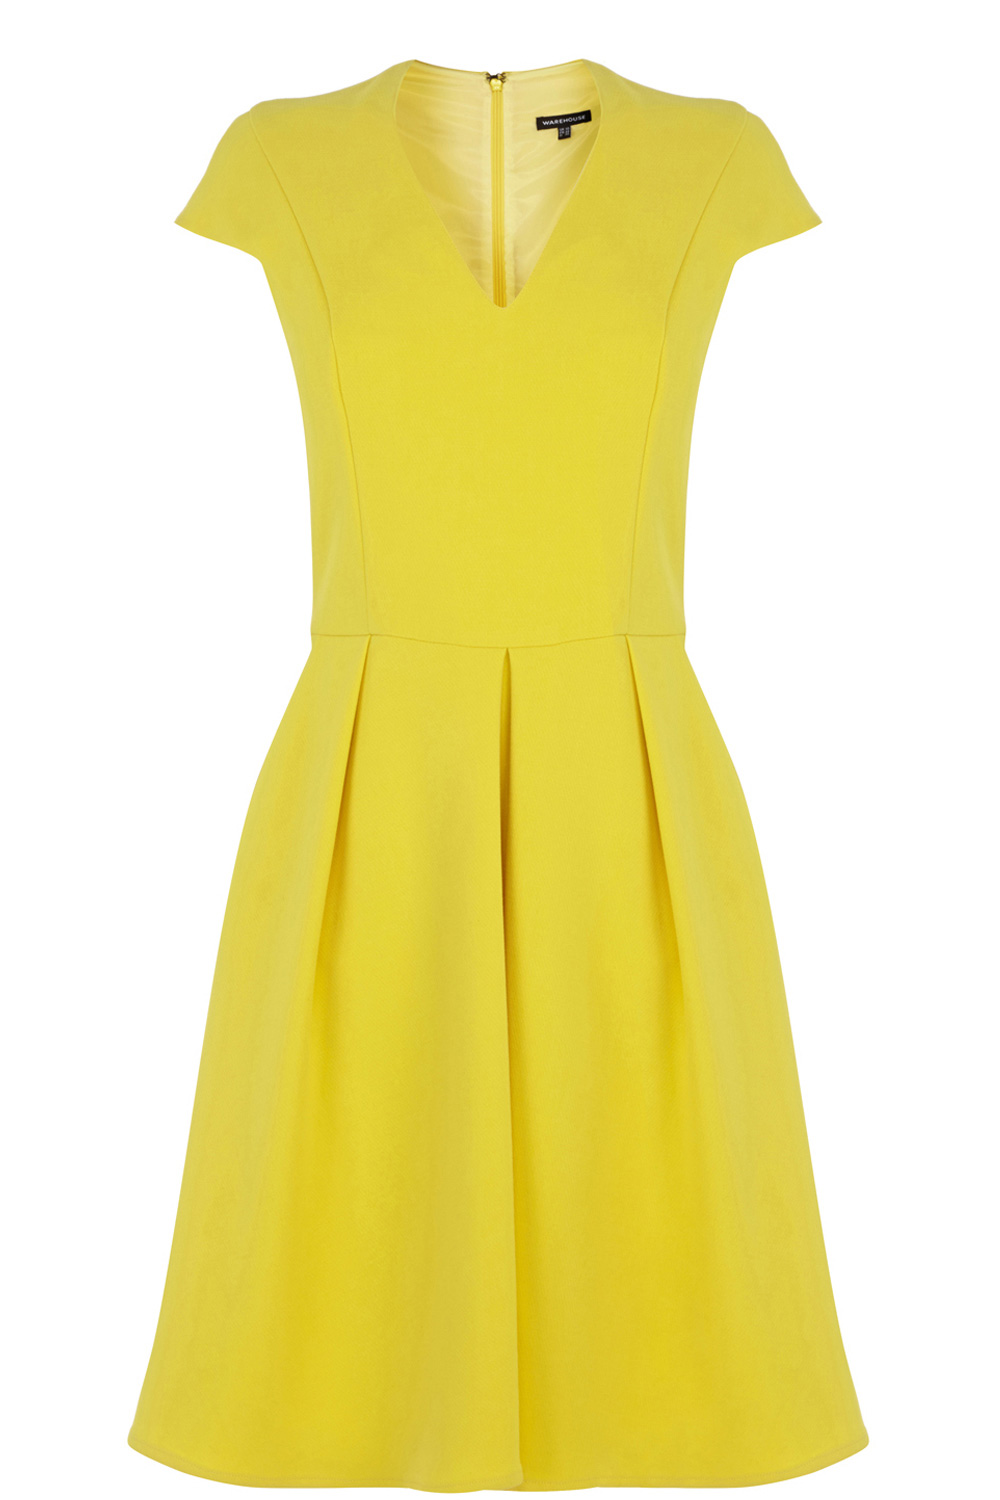 Yellow Dress Fall Wedding